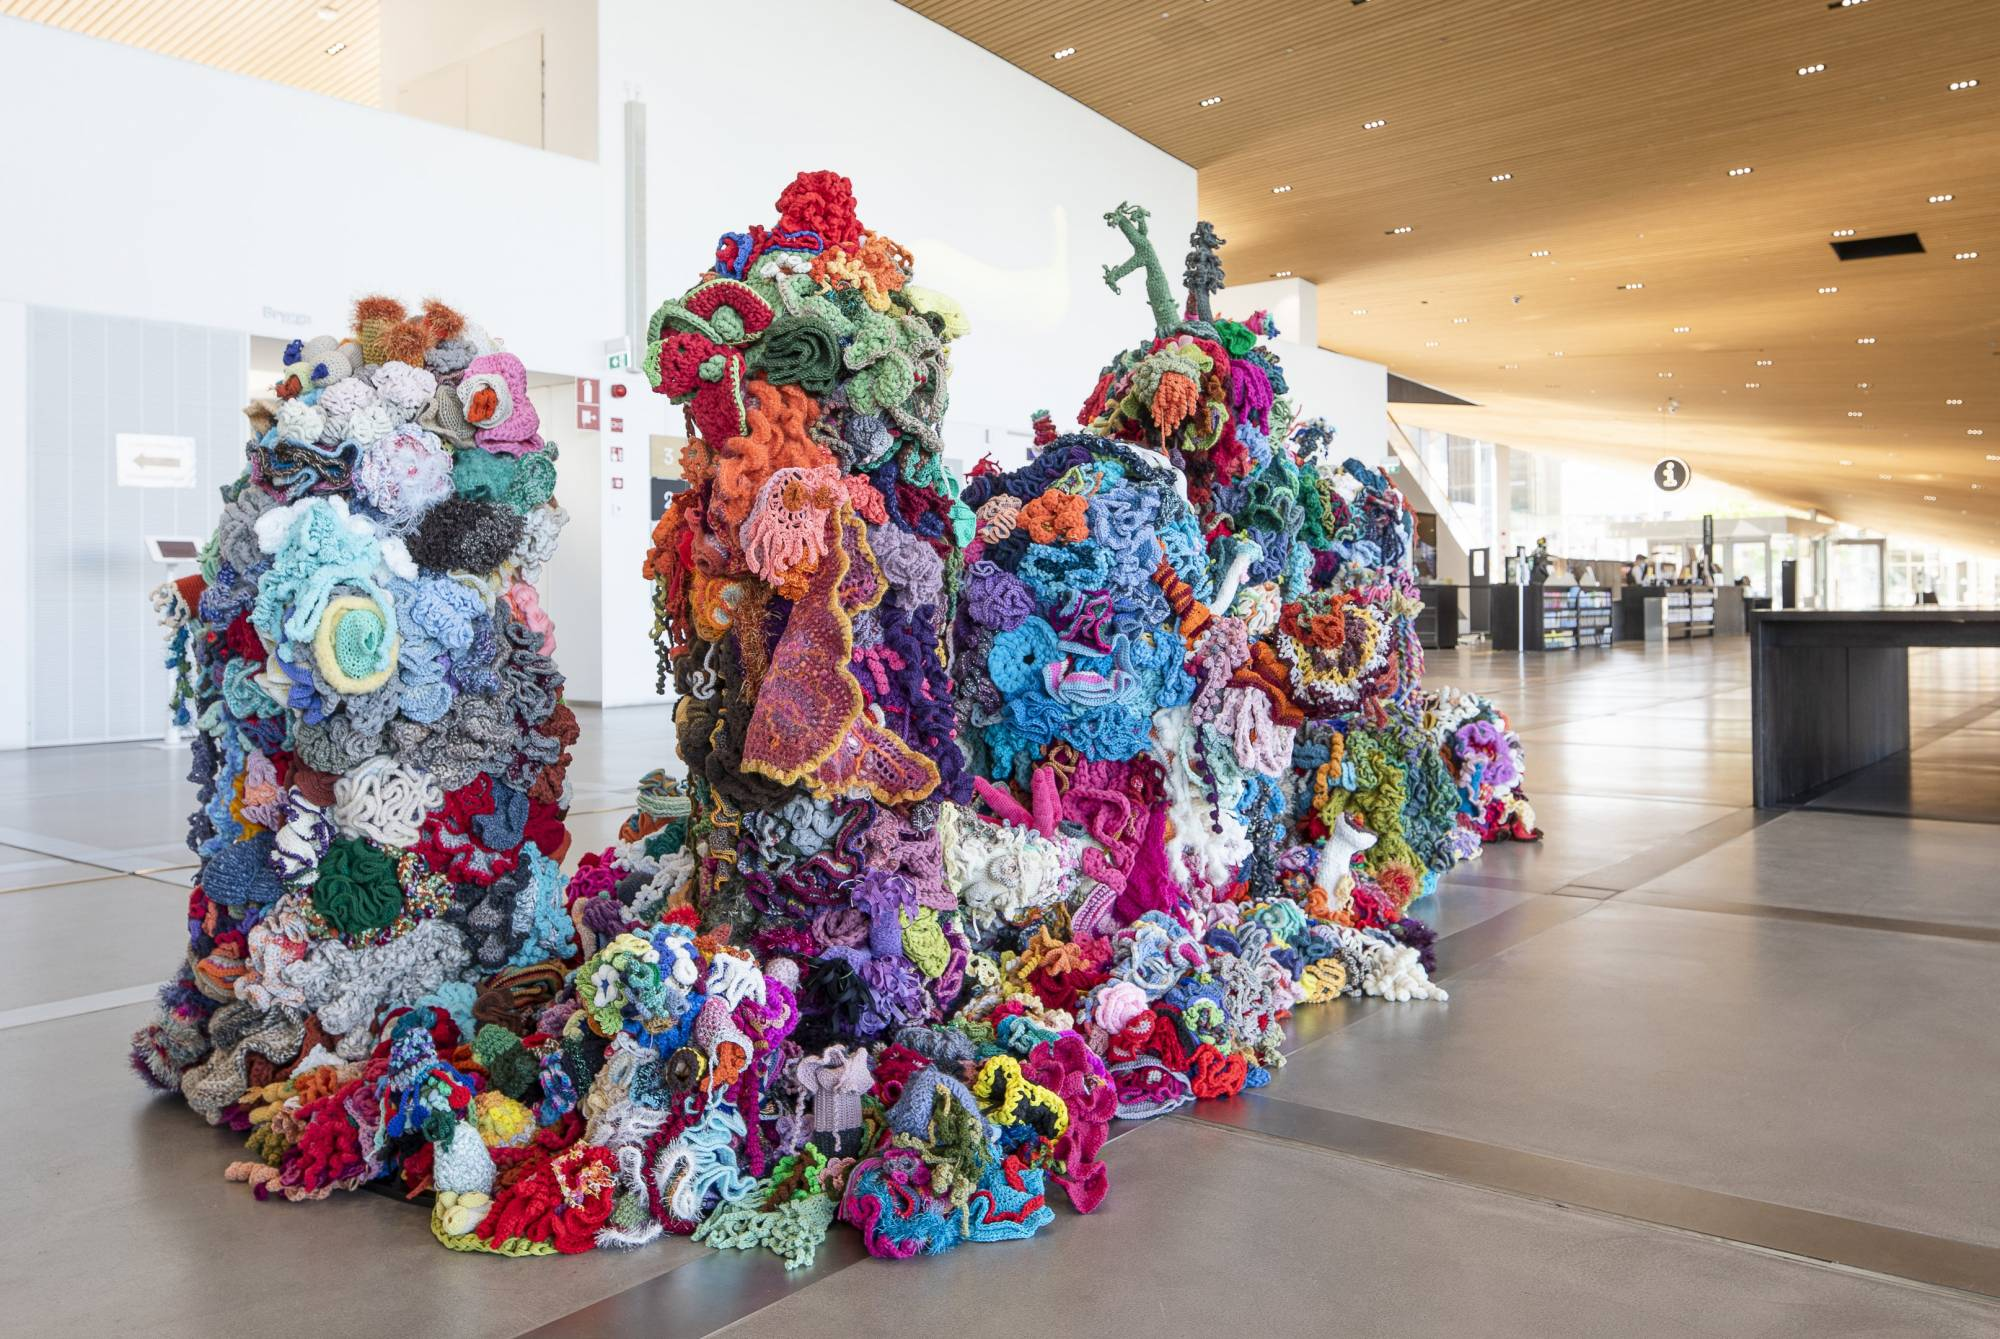 Crochet coral reef installed at Oodi Library in Helsinki